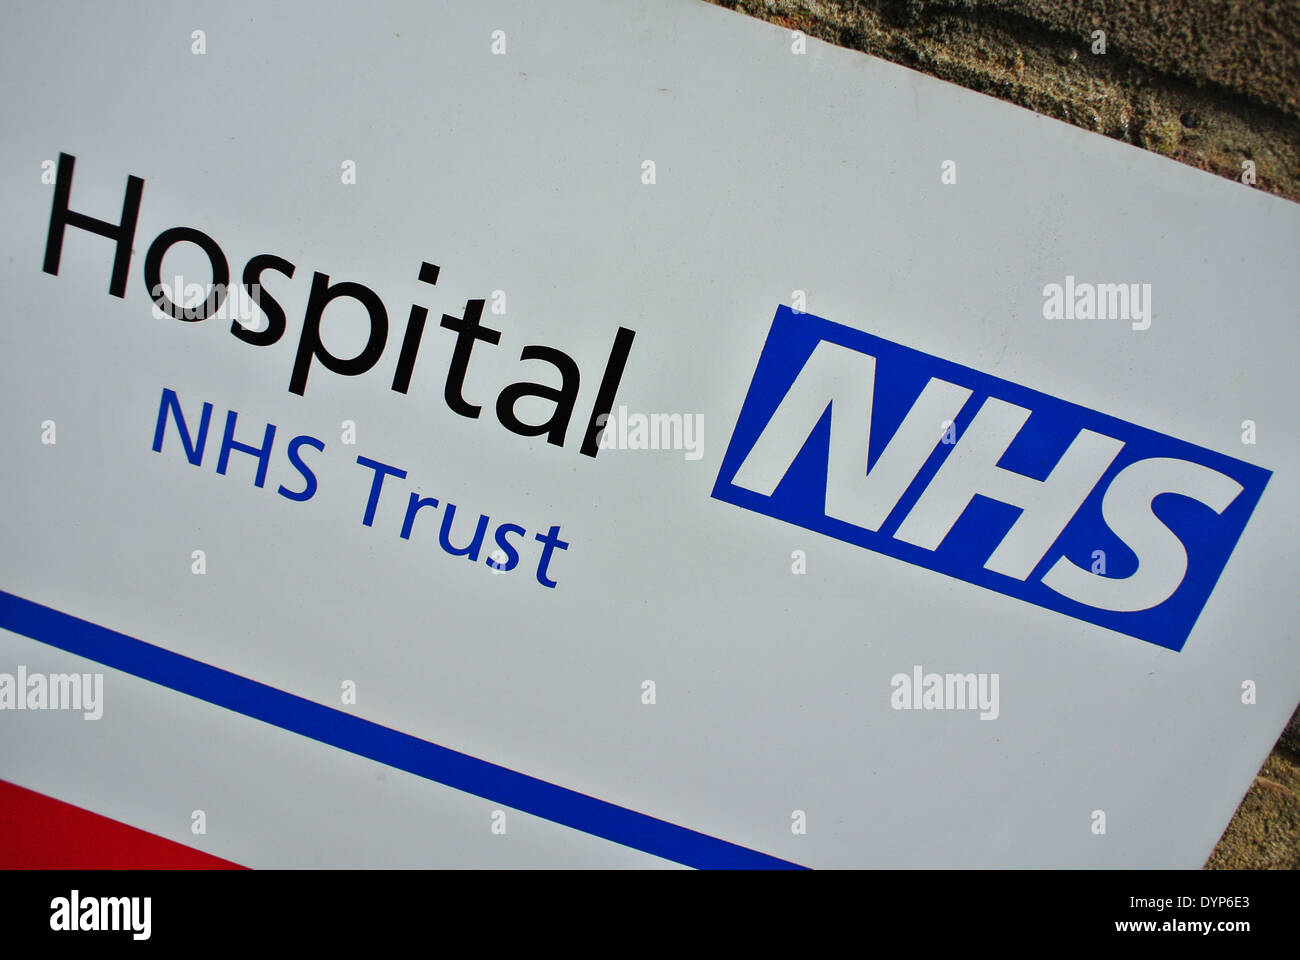 Hospital NHS Trust sign - Stock Image